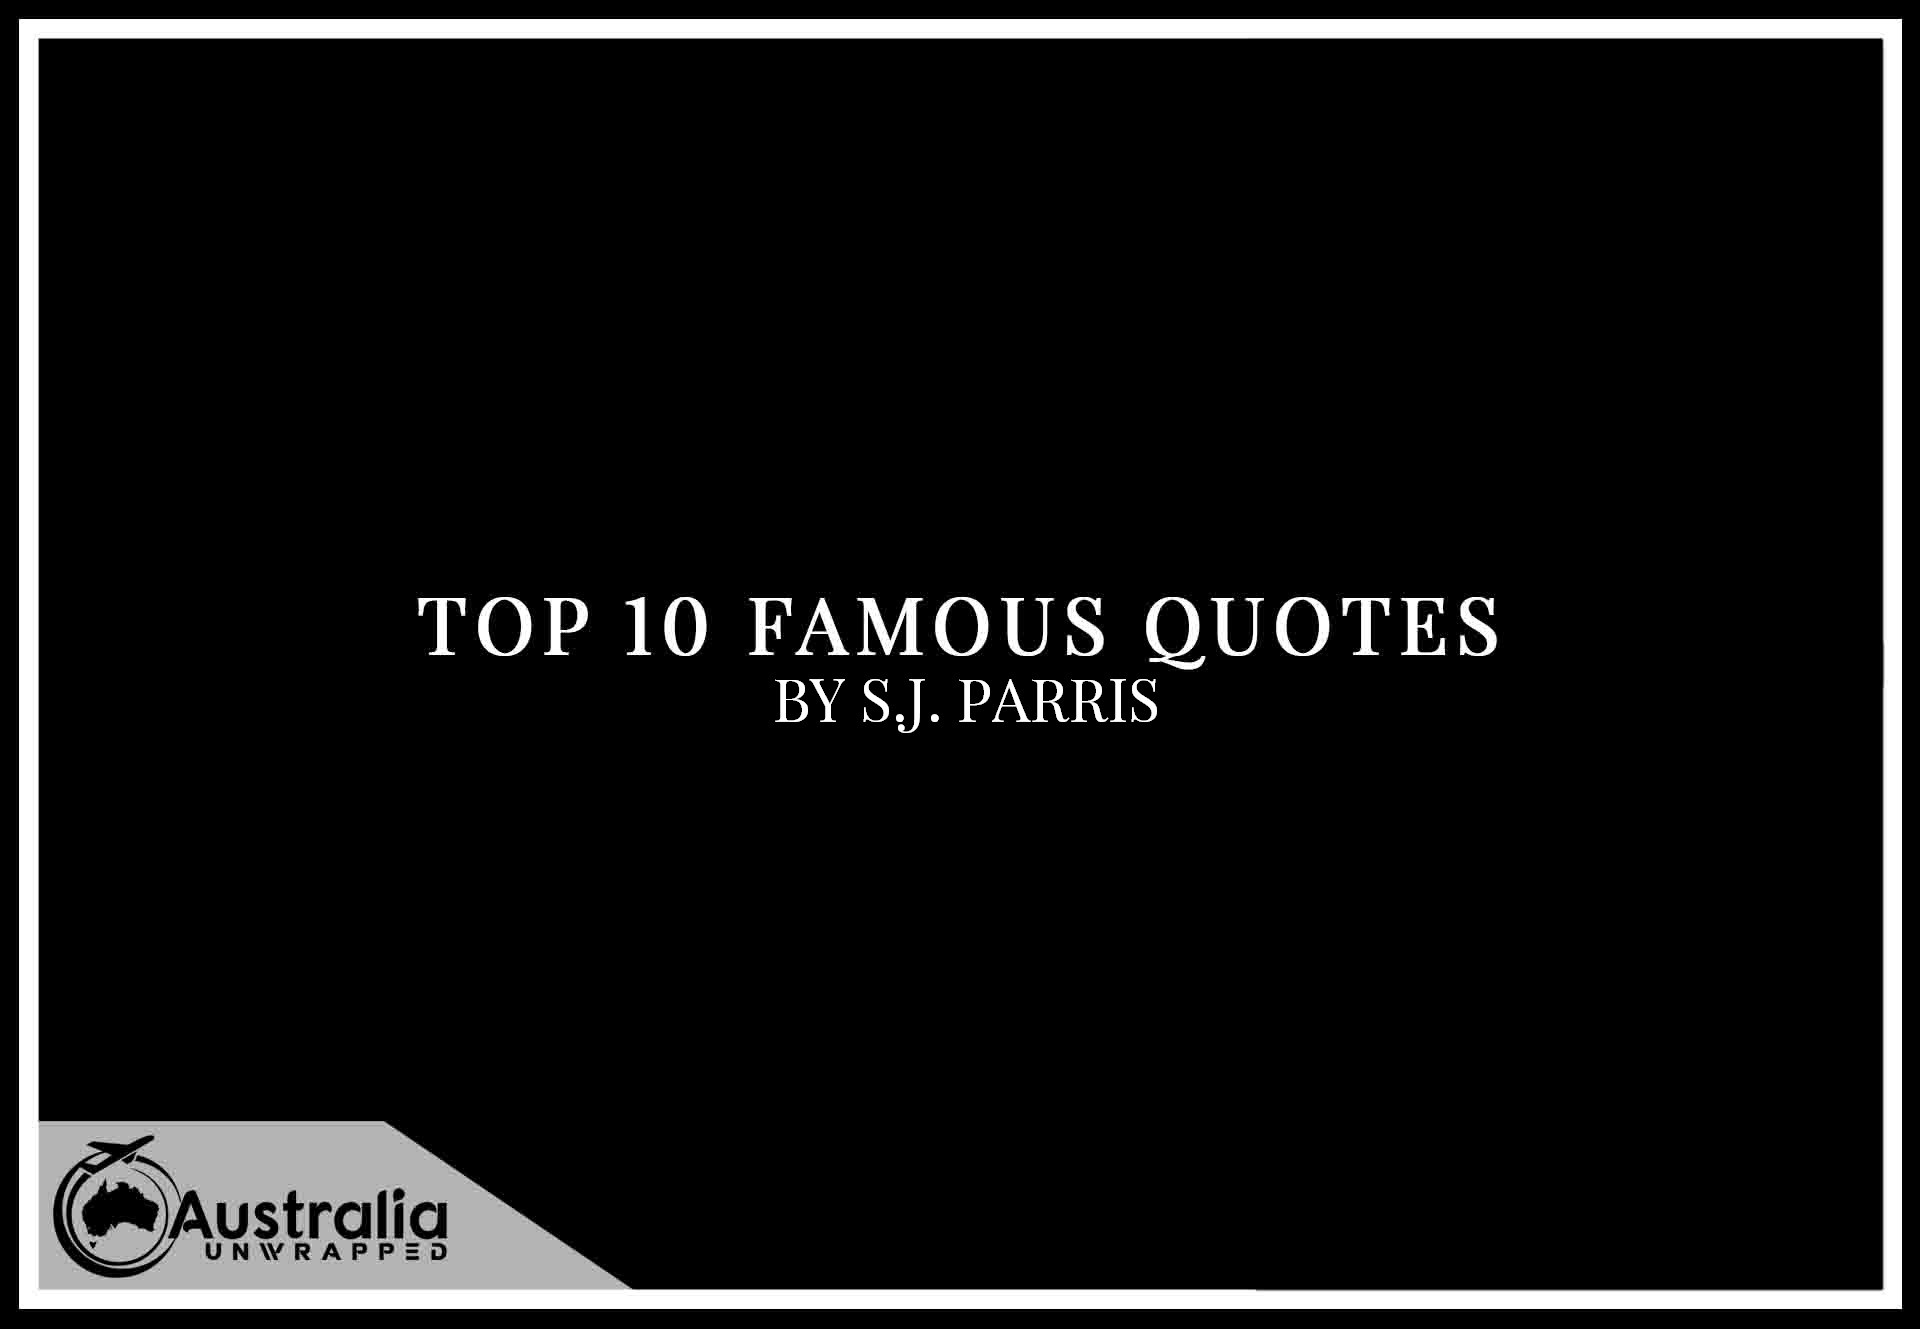 Top 10 Famous Quotes by Author S.J. Parris